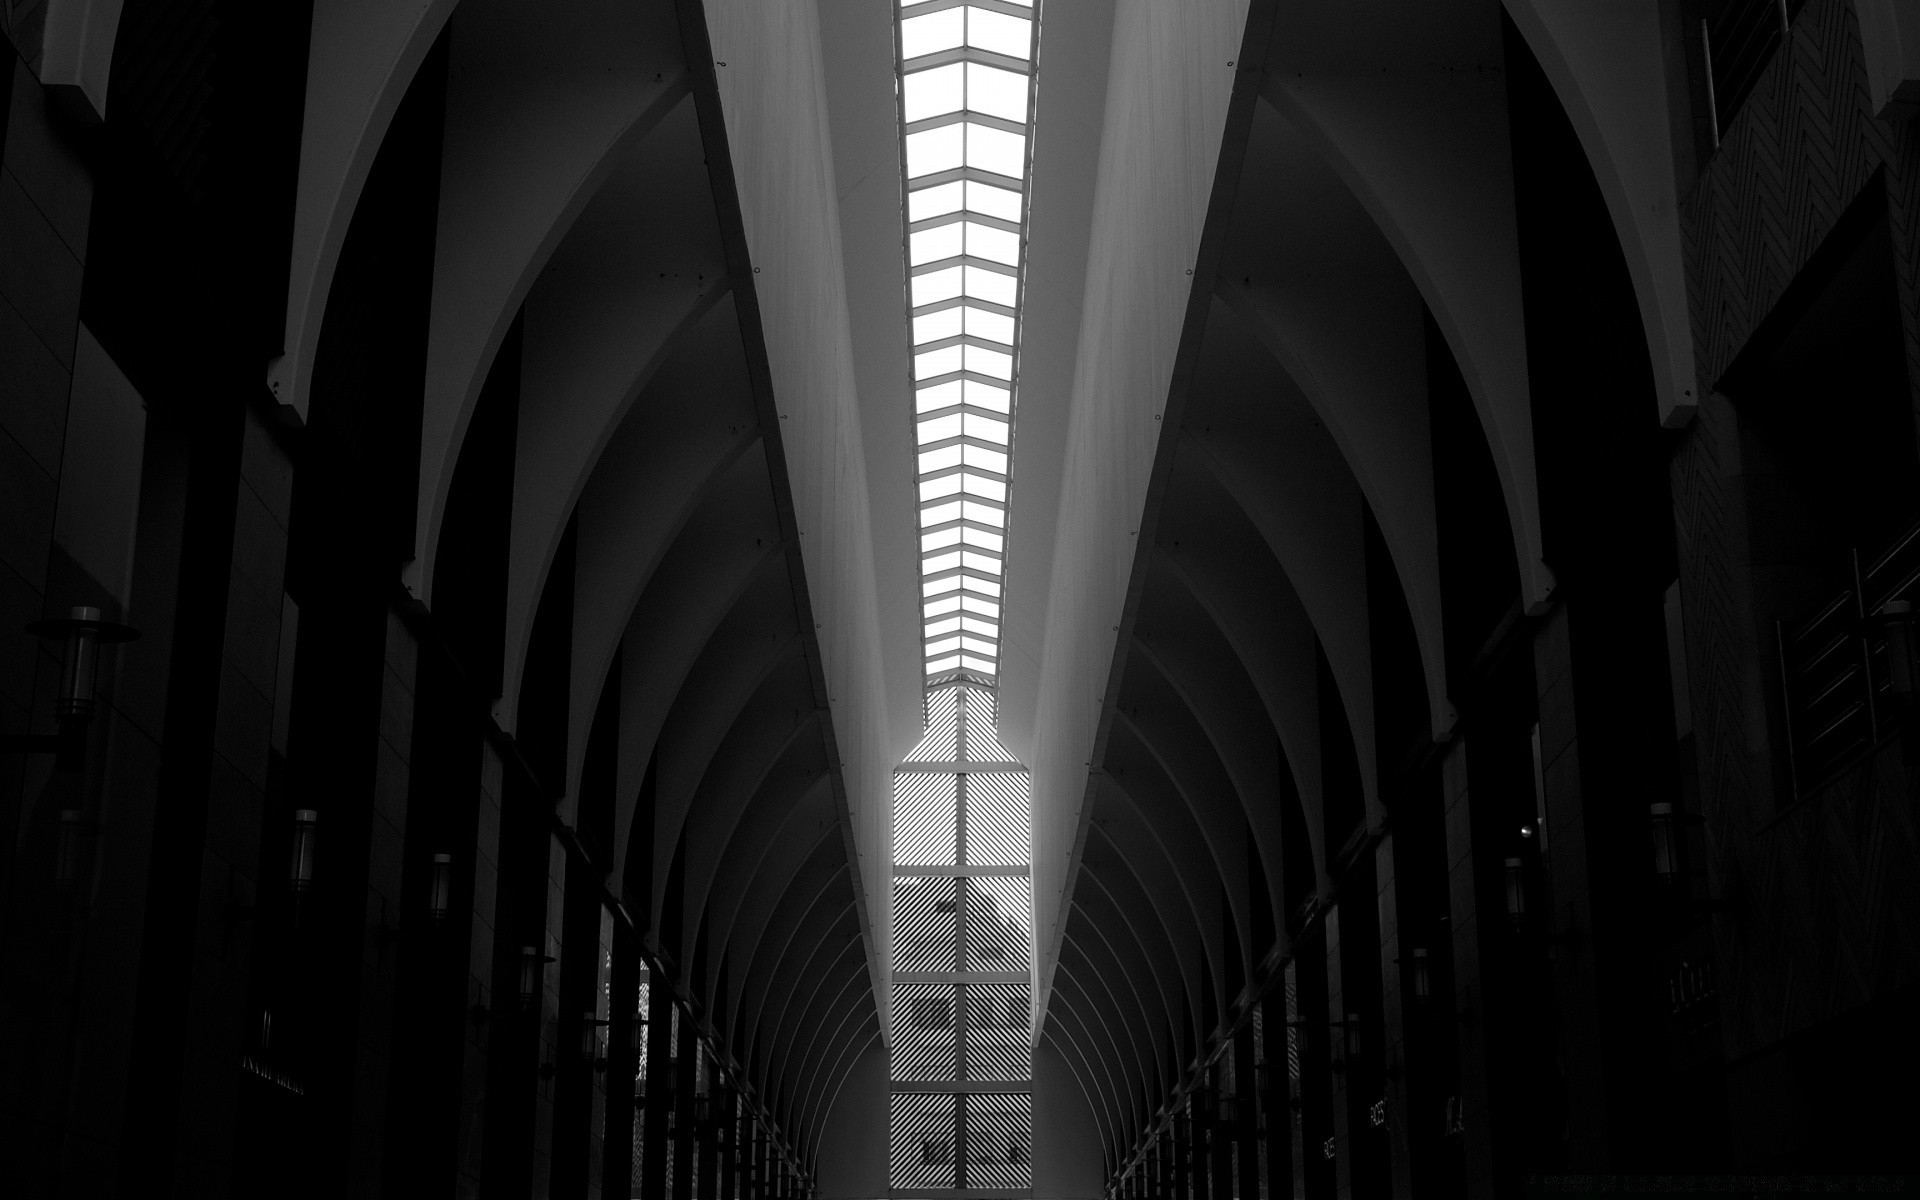 black and white architecture tunnel indoors hallway monochrome ceiling tube light city building bridge passage urban construction shadow perspective glass dark window